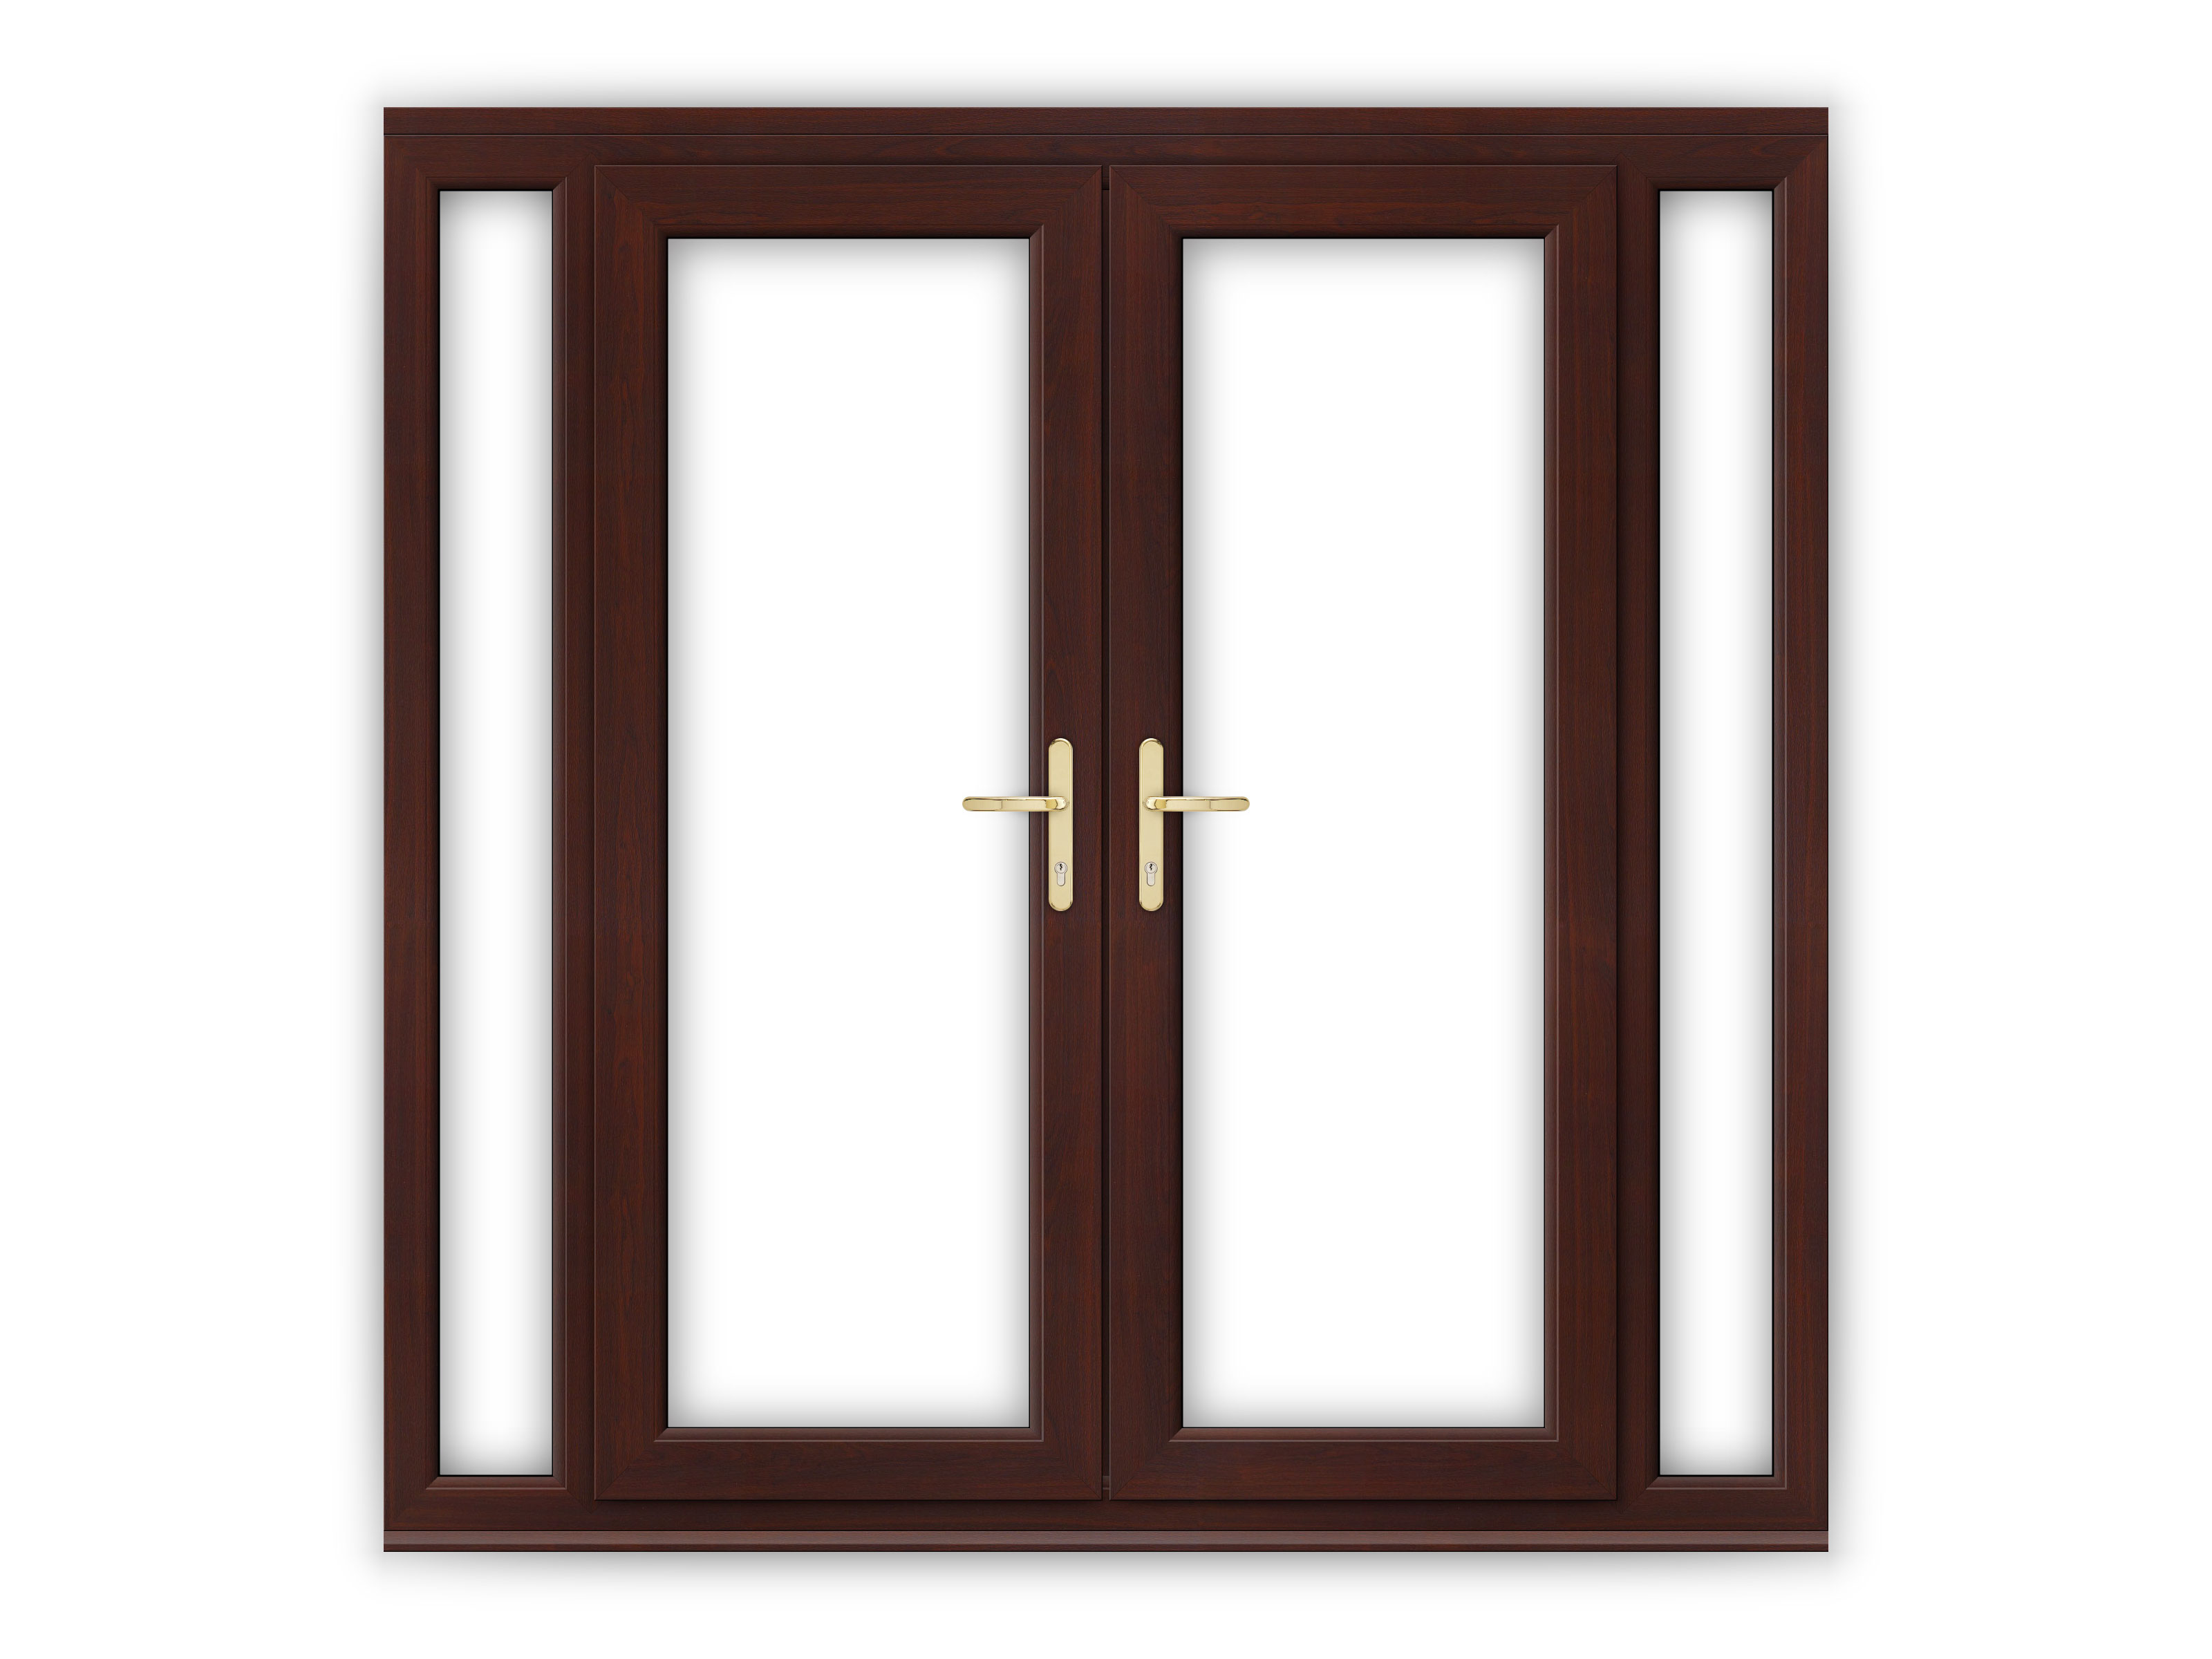 5ft rosewood upvc french doors with narrow side panels for Upvc french doors 1790 x 2090mm